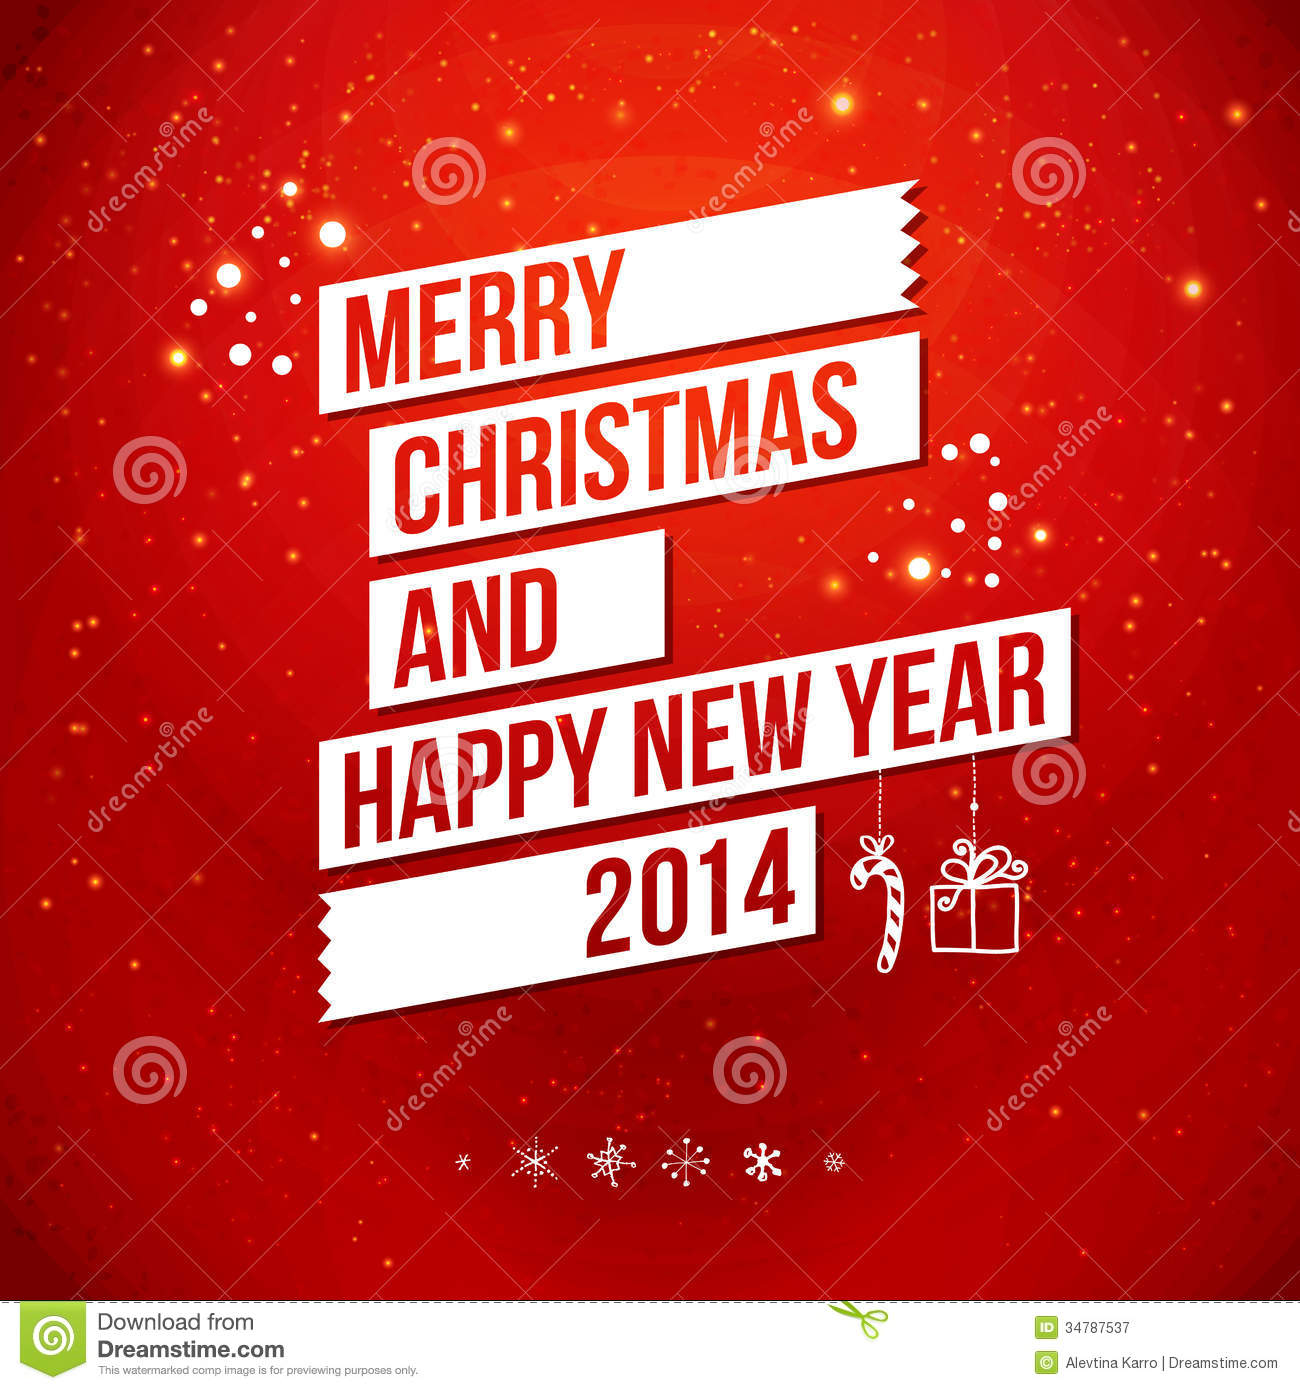 Merry Christmas And Happy New Year 2014 Card. Stock Illustration ...